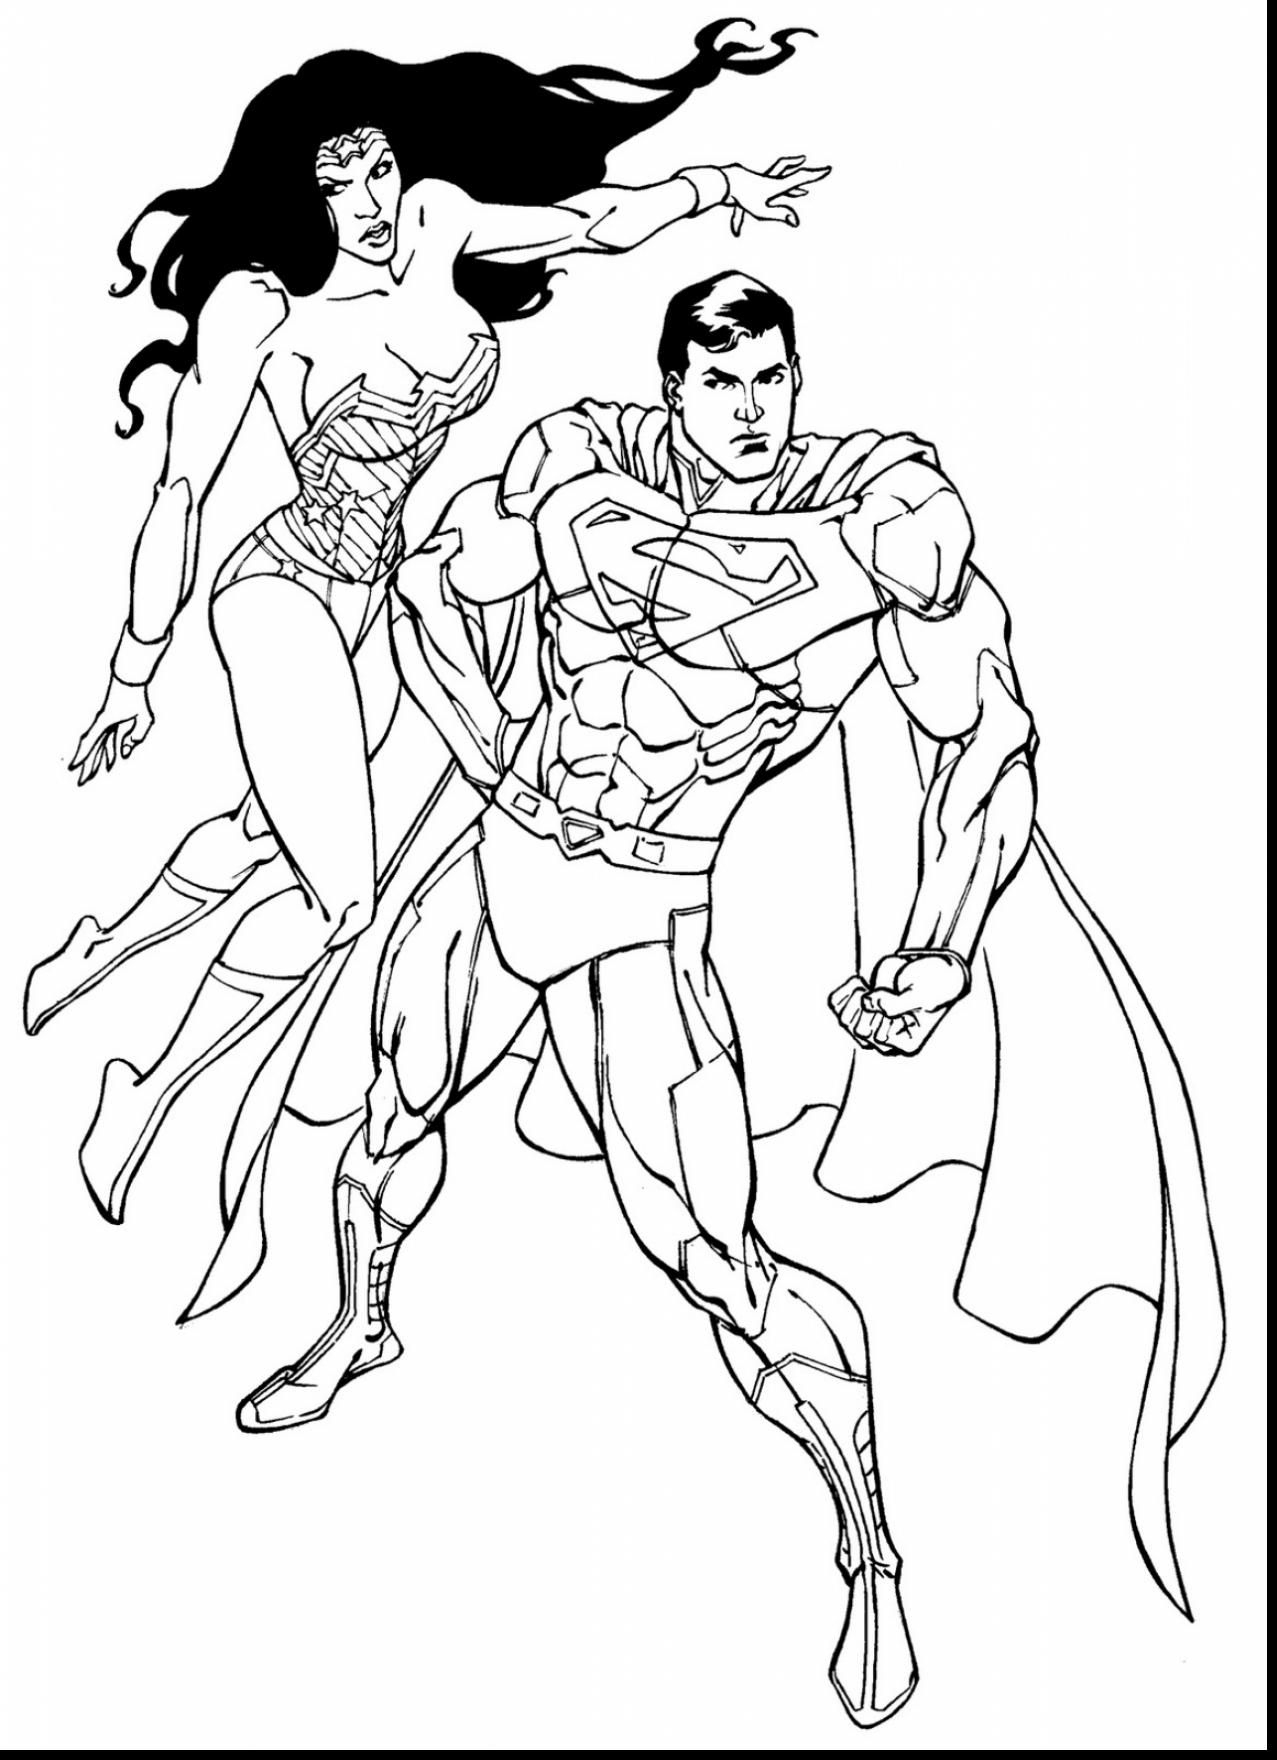 Great Superman And Wonder Woman Coloring Pages With pour Coloriage Wonder Woman A Imprimer